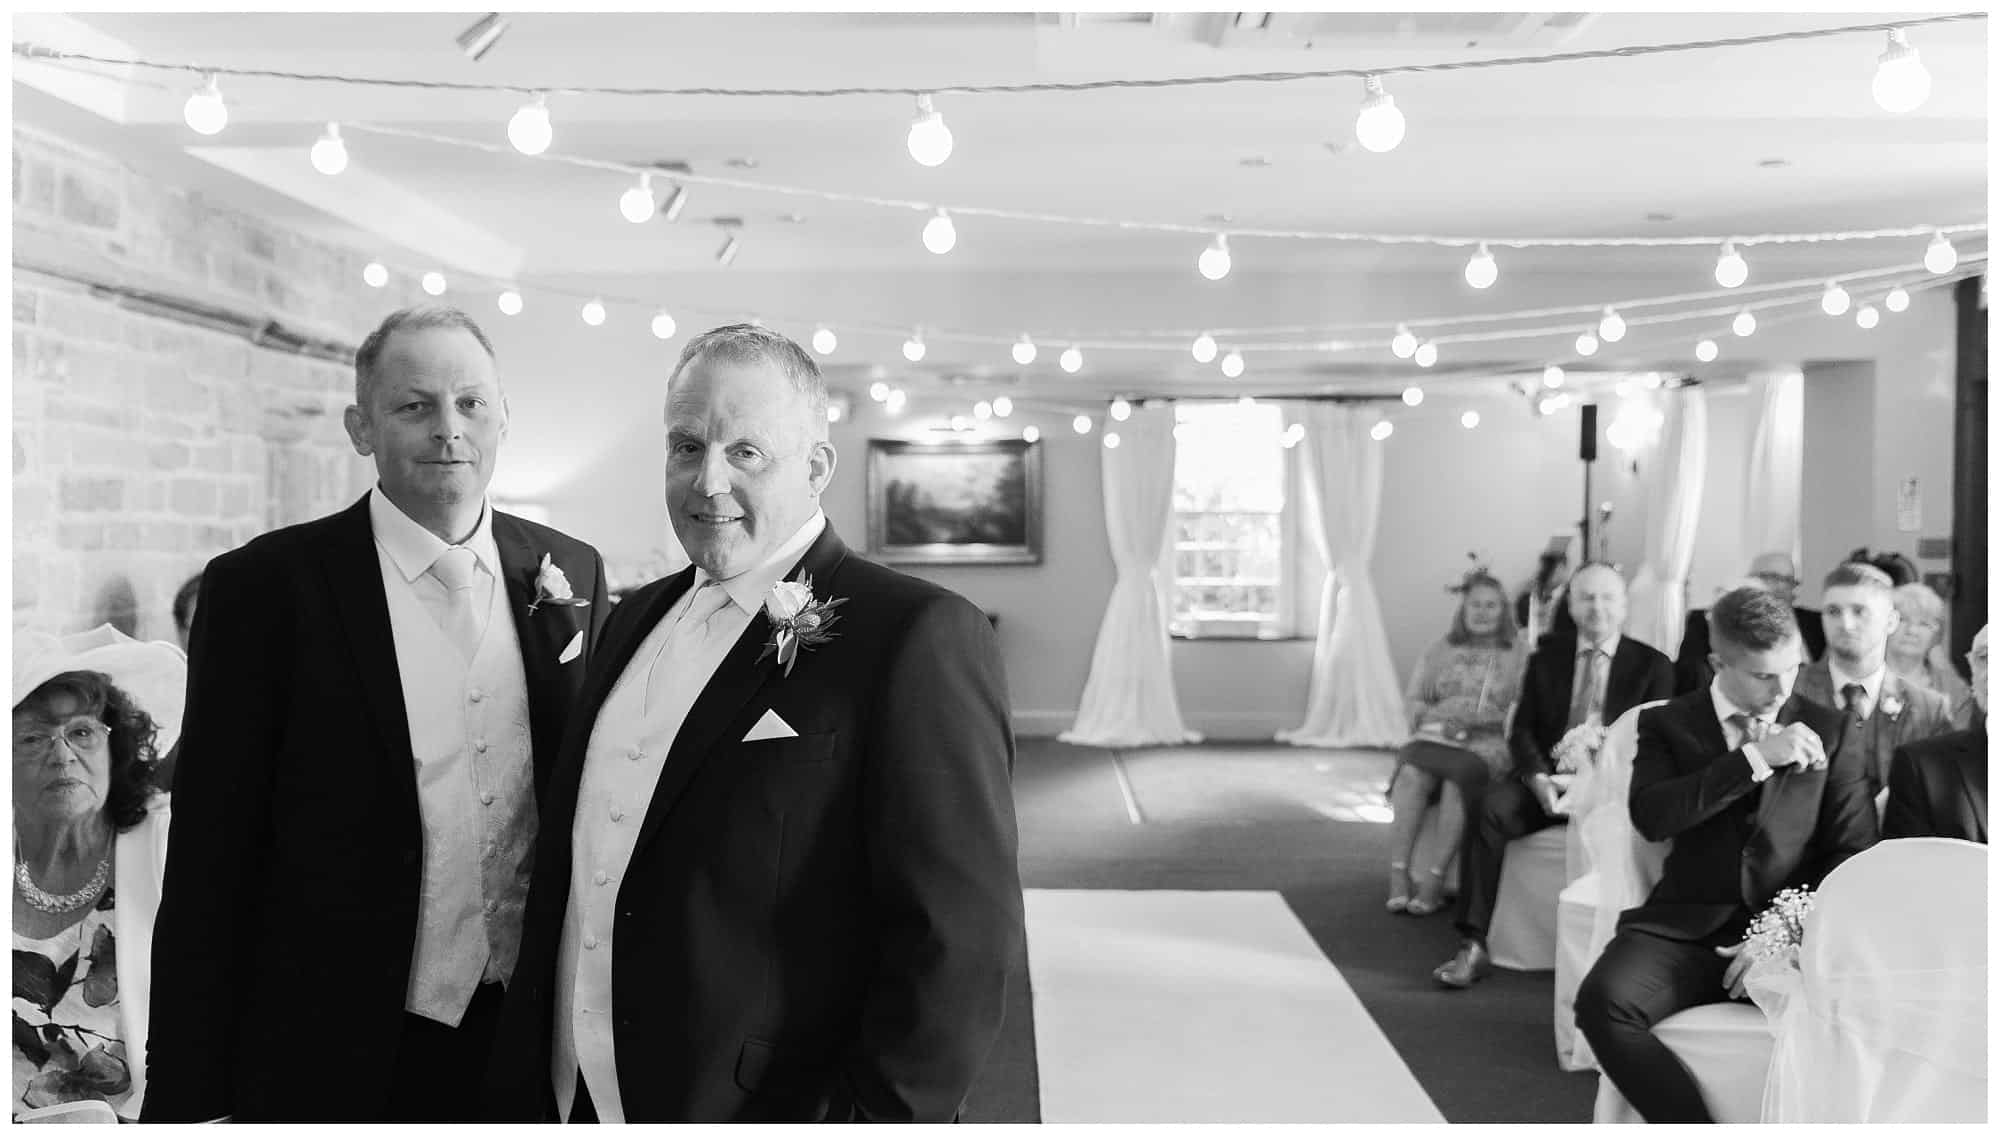 Whitley Hall Hotel Wedding - groom and best man waiting for service to start